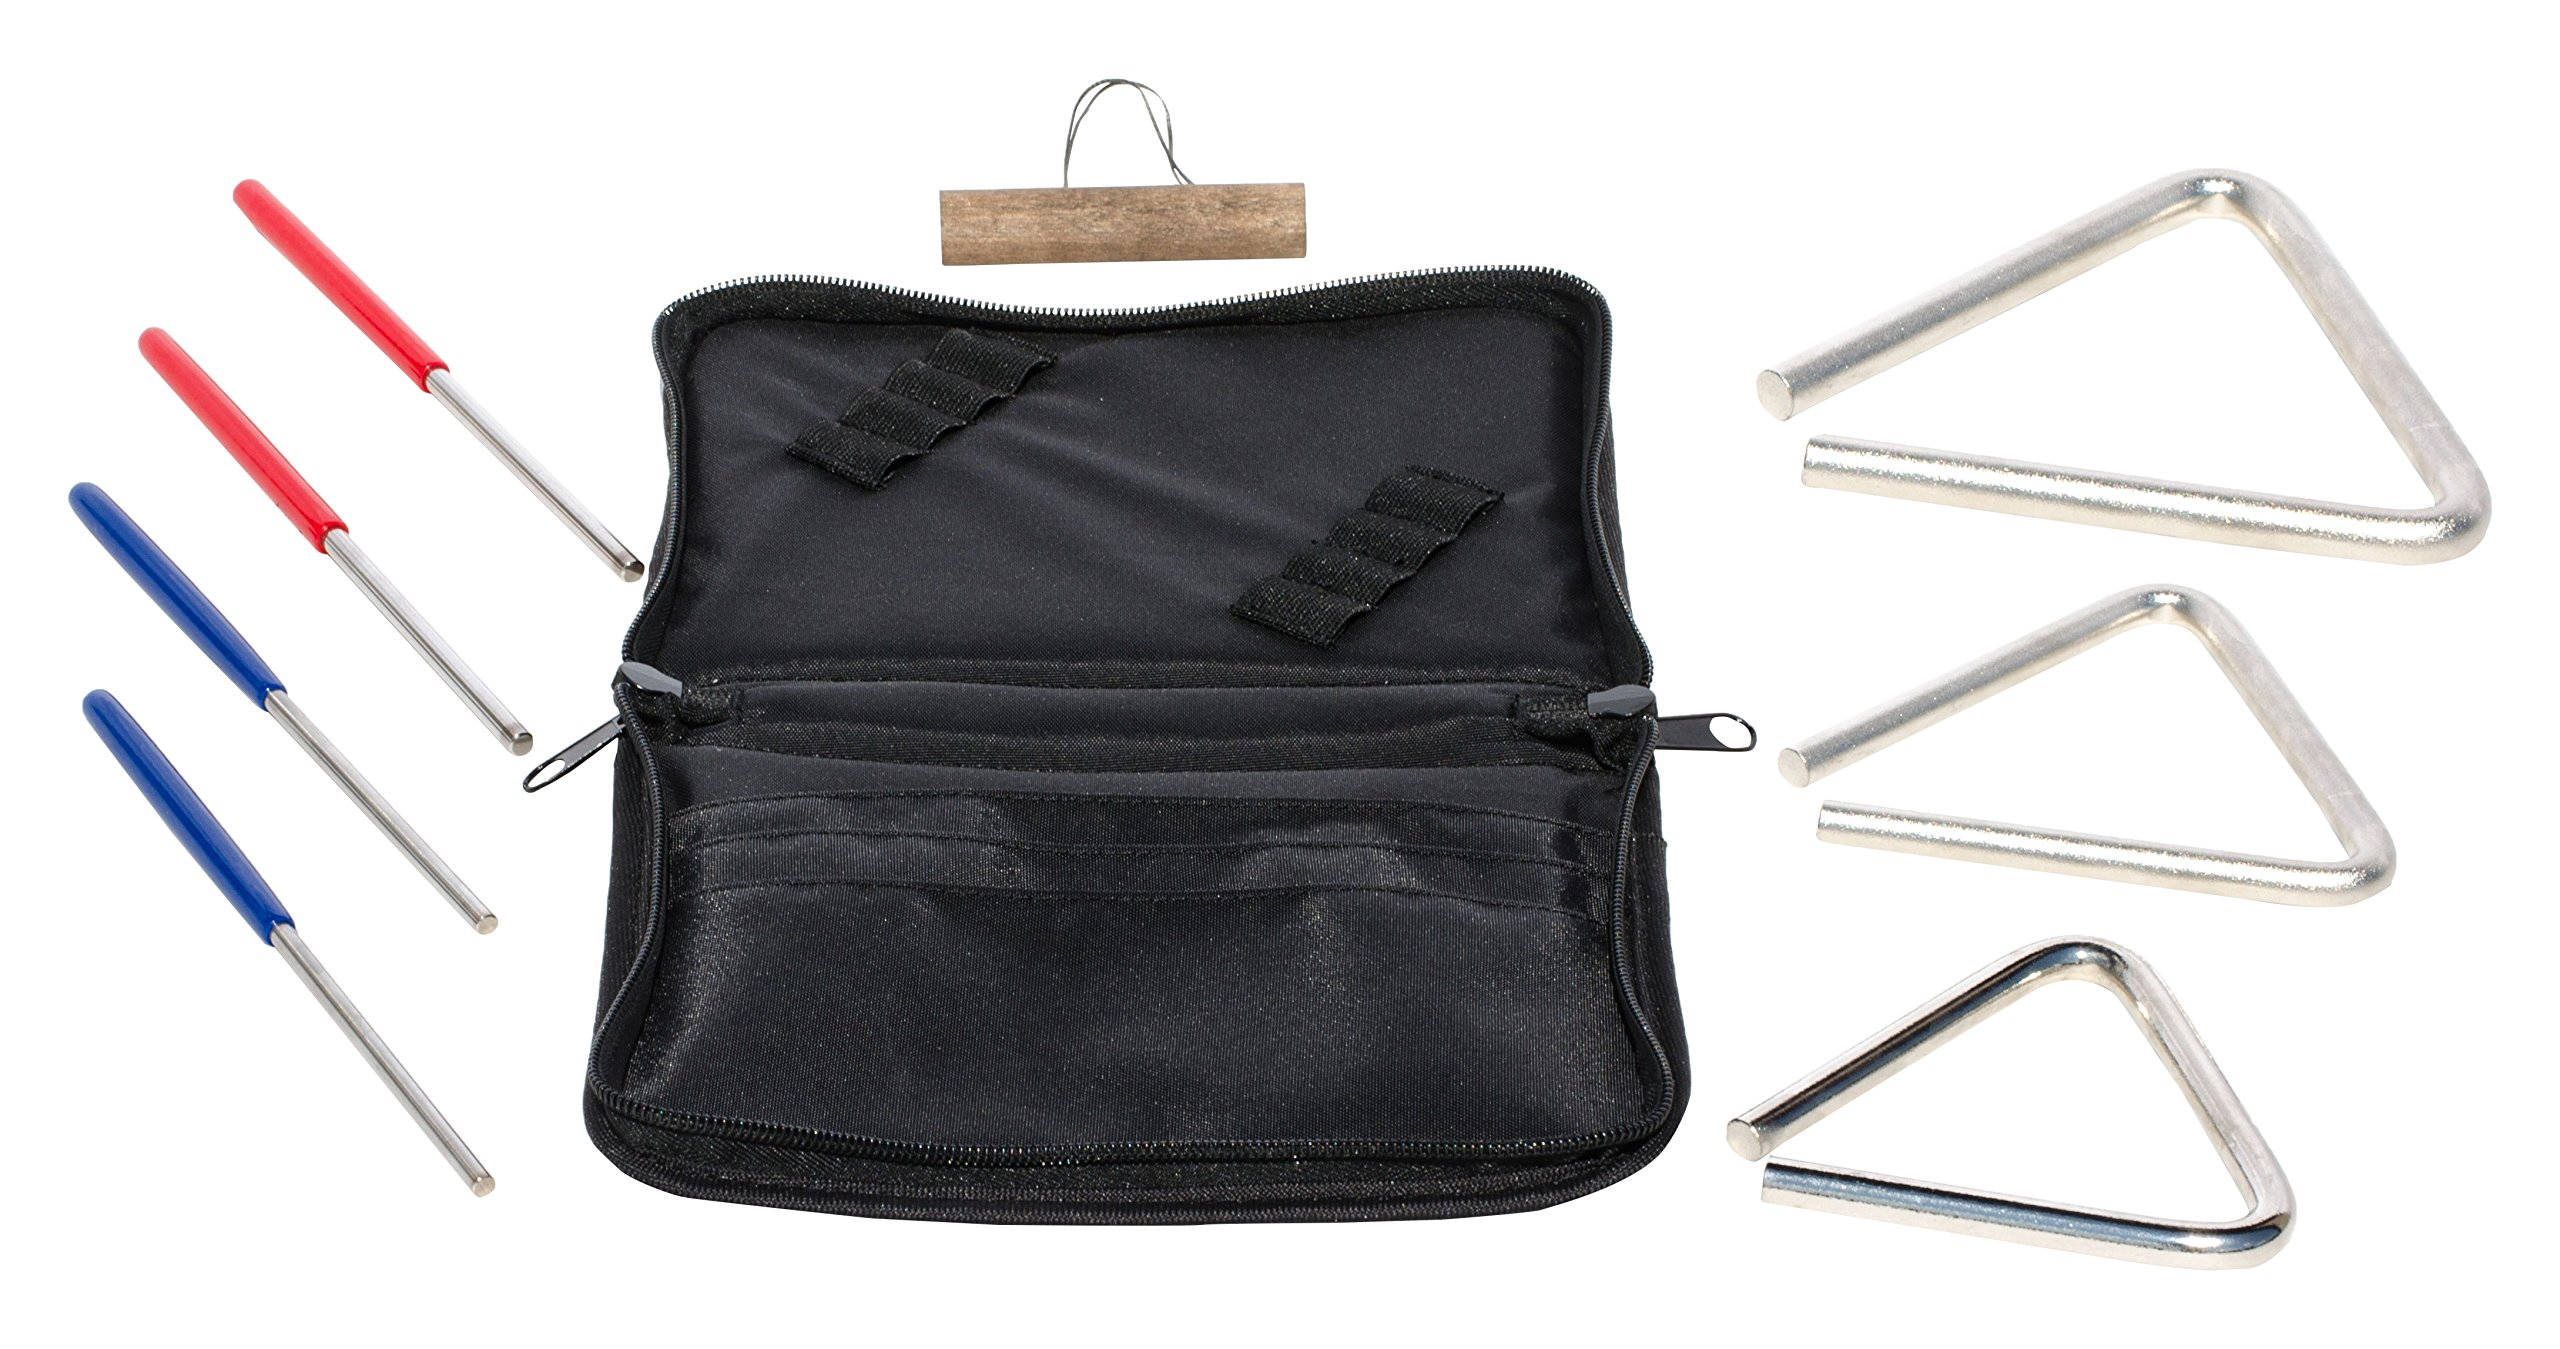 TreeWorks Chimes TRE57BP Made in USA Set of Three Triangles and Beaters with Carrying Case for Storage and Travel by TreeWorks Chimes